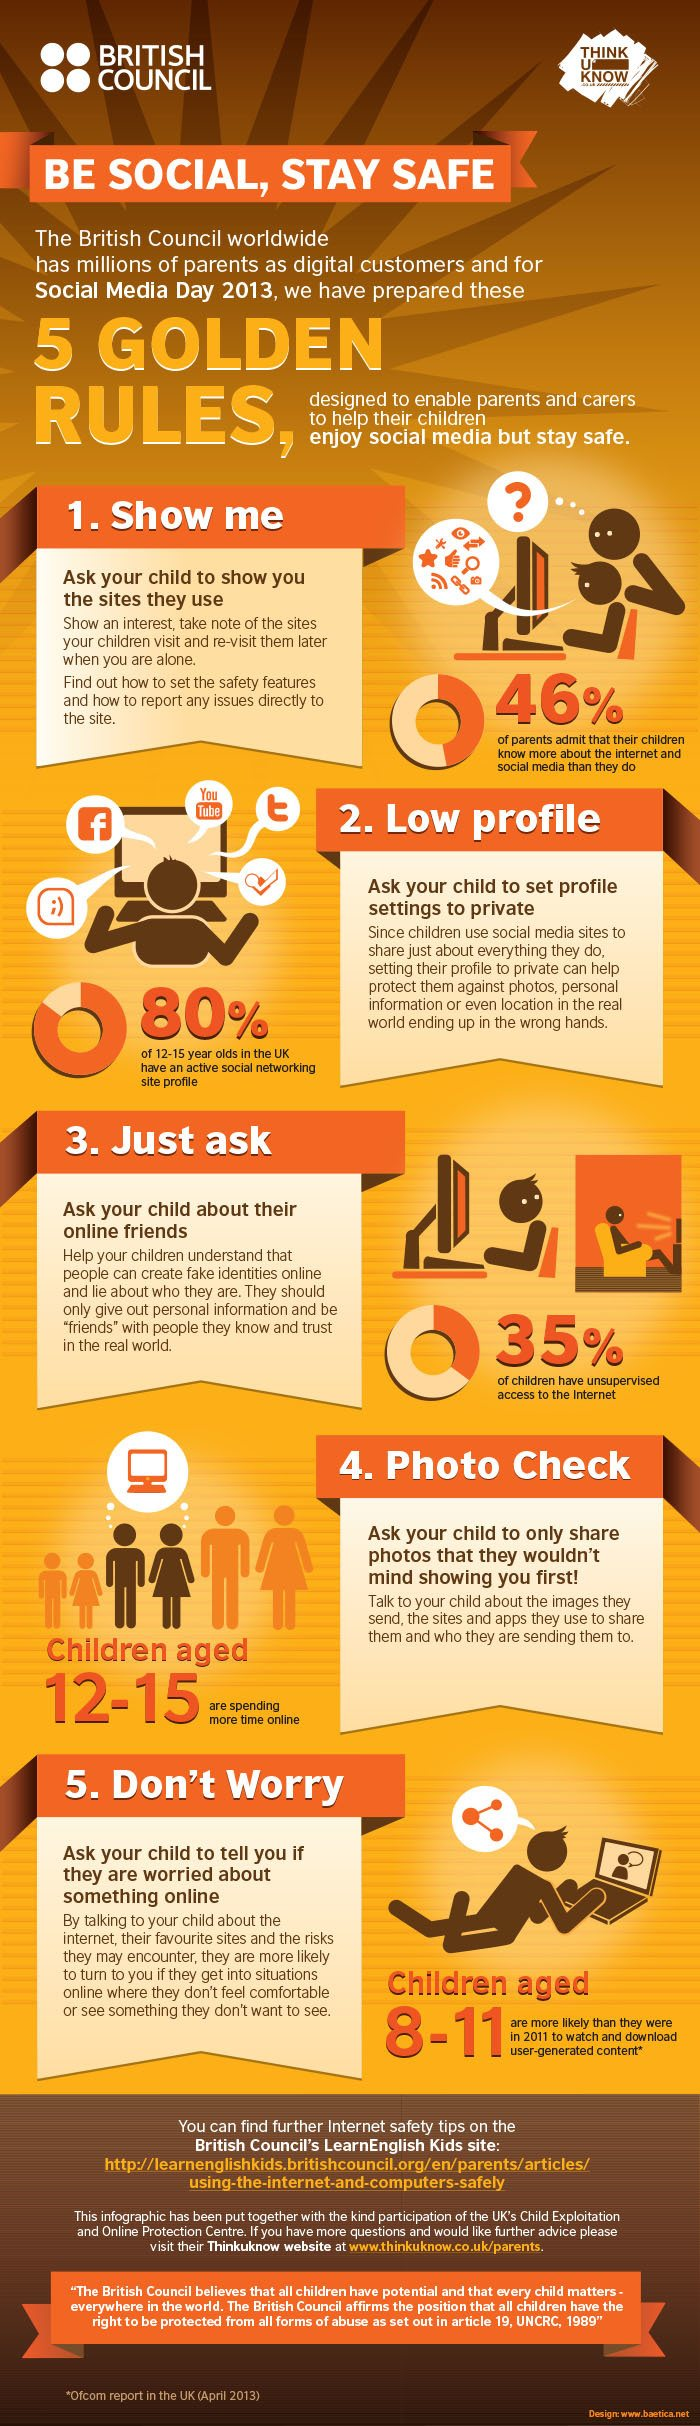 The 5 Golden Rules for Children's Online Safety Infographic